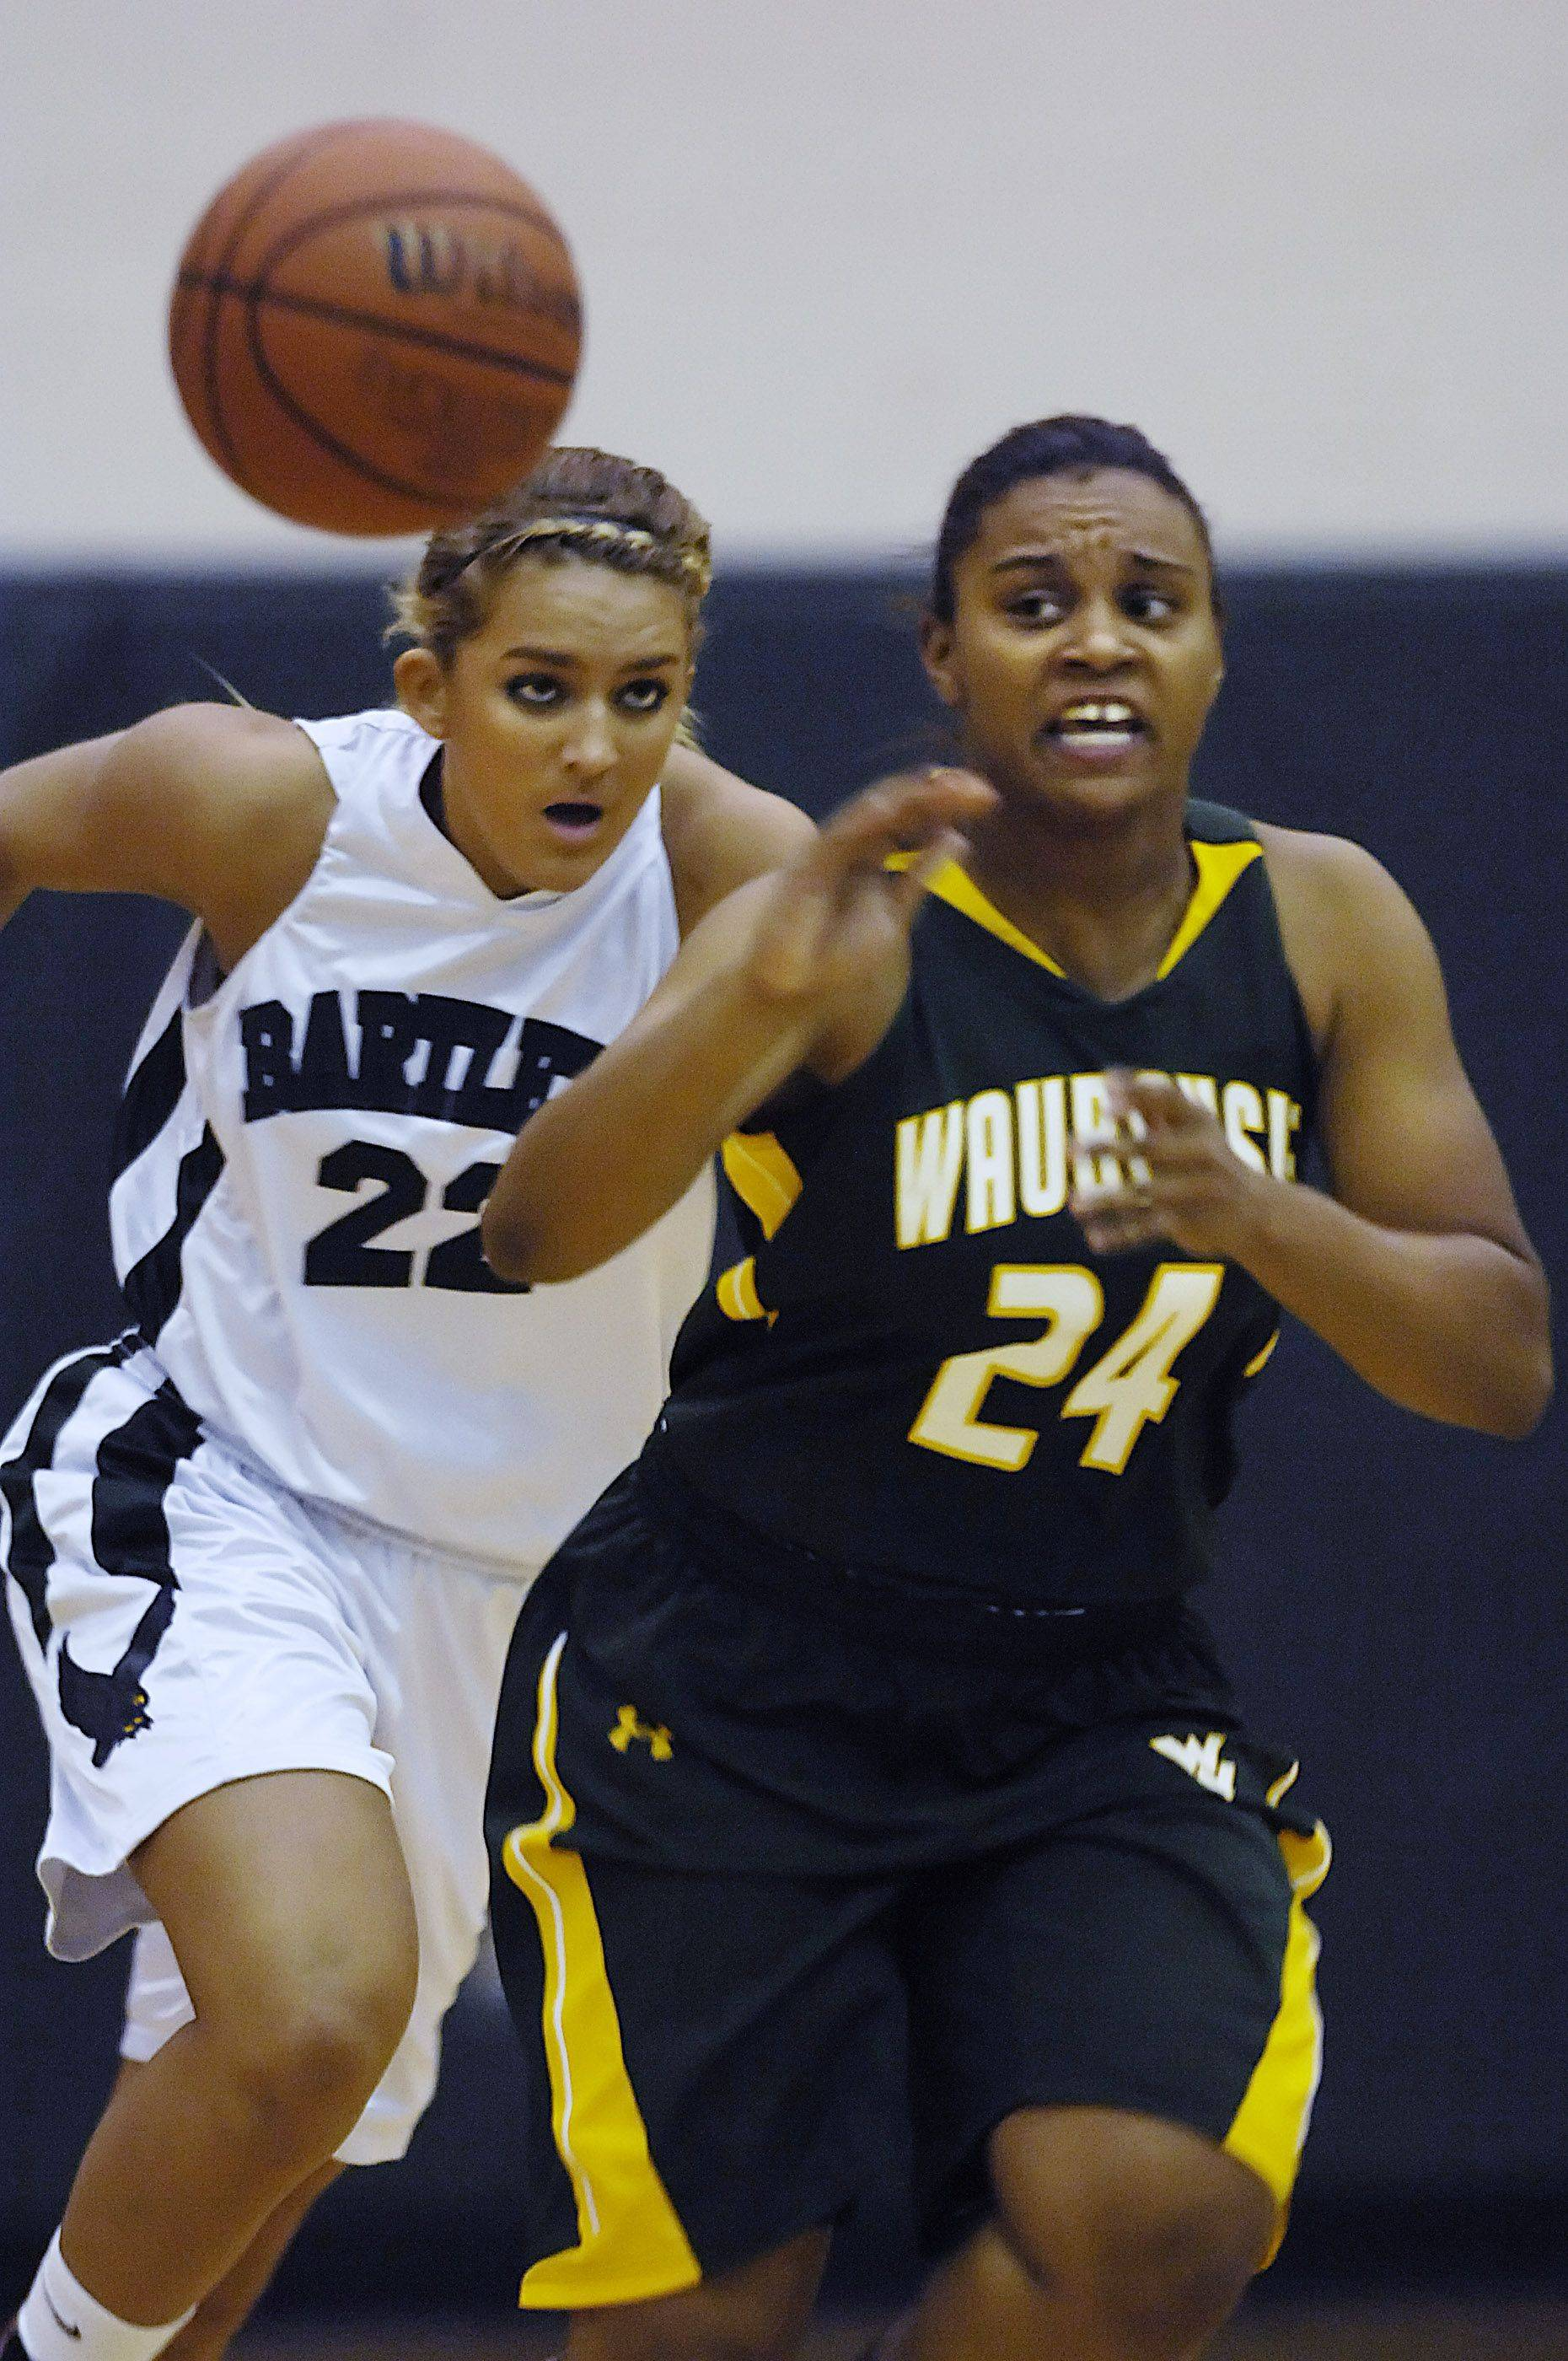 Waubonsie Valley's Tanysha Gardner-Walls passes the ball as Bartlett's Haley Videckis chases upcourt.